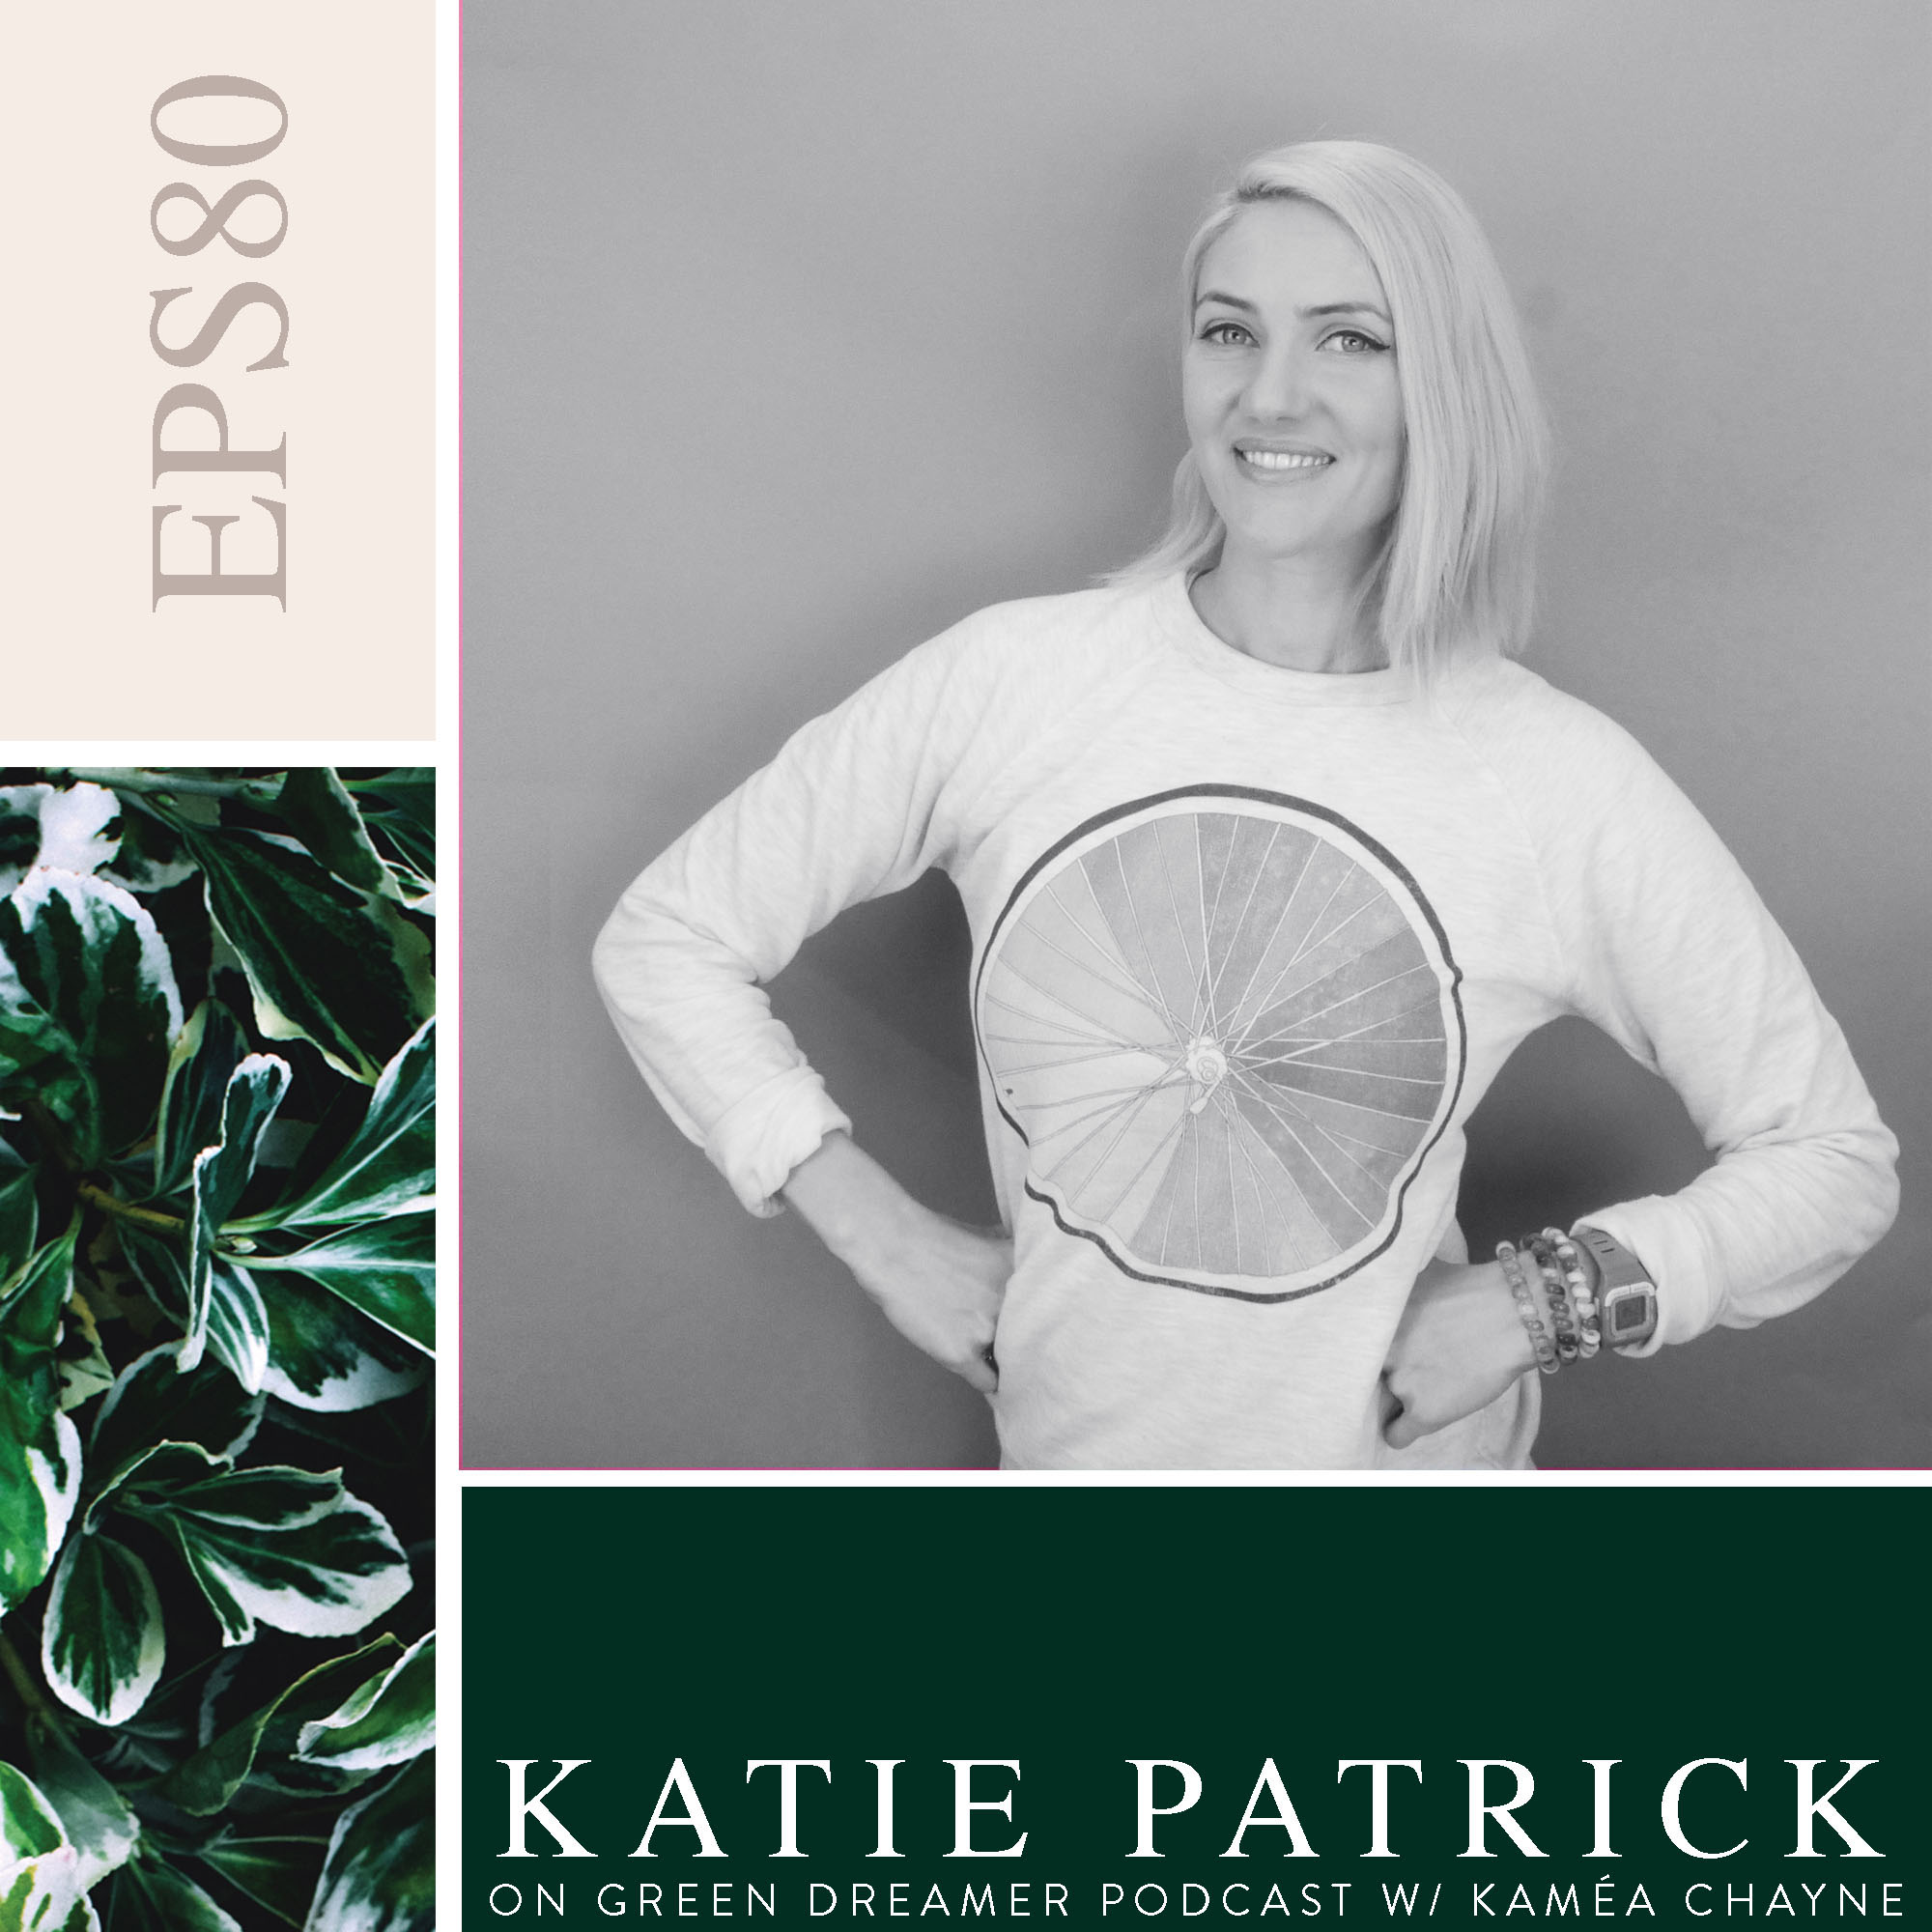 80-Katie-Patrick-hellow-World-Labs-How-To-Save-The-World-talks-Sustainability-on-Green-Dreamer-Podcast-with-Kamea-Chayne.jpg